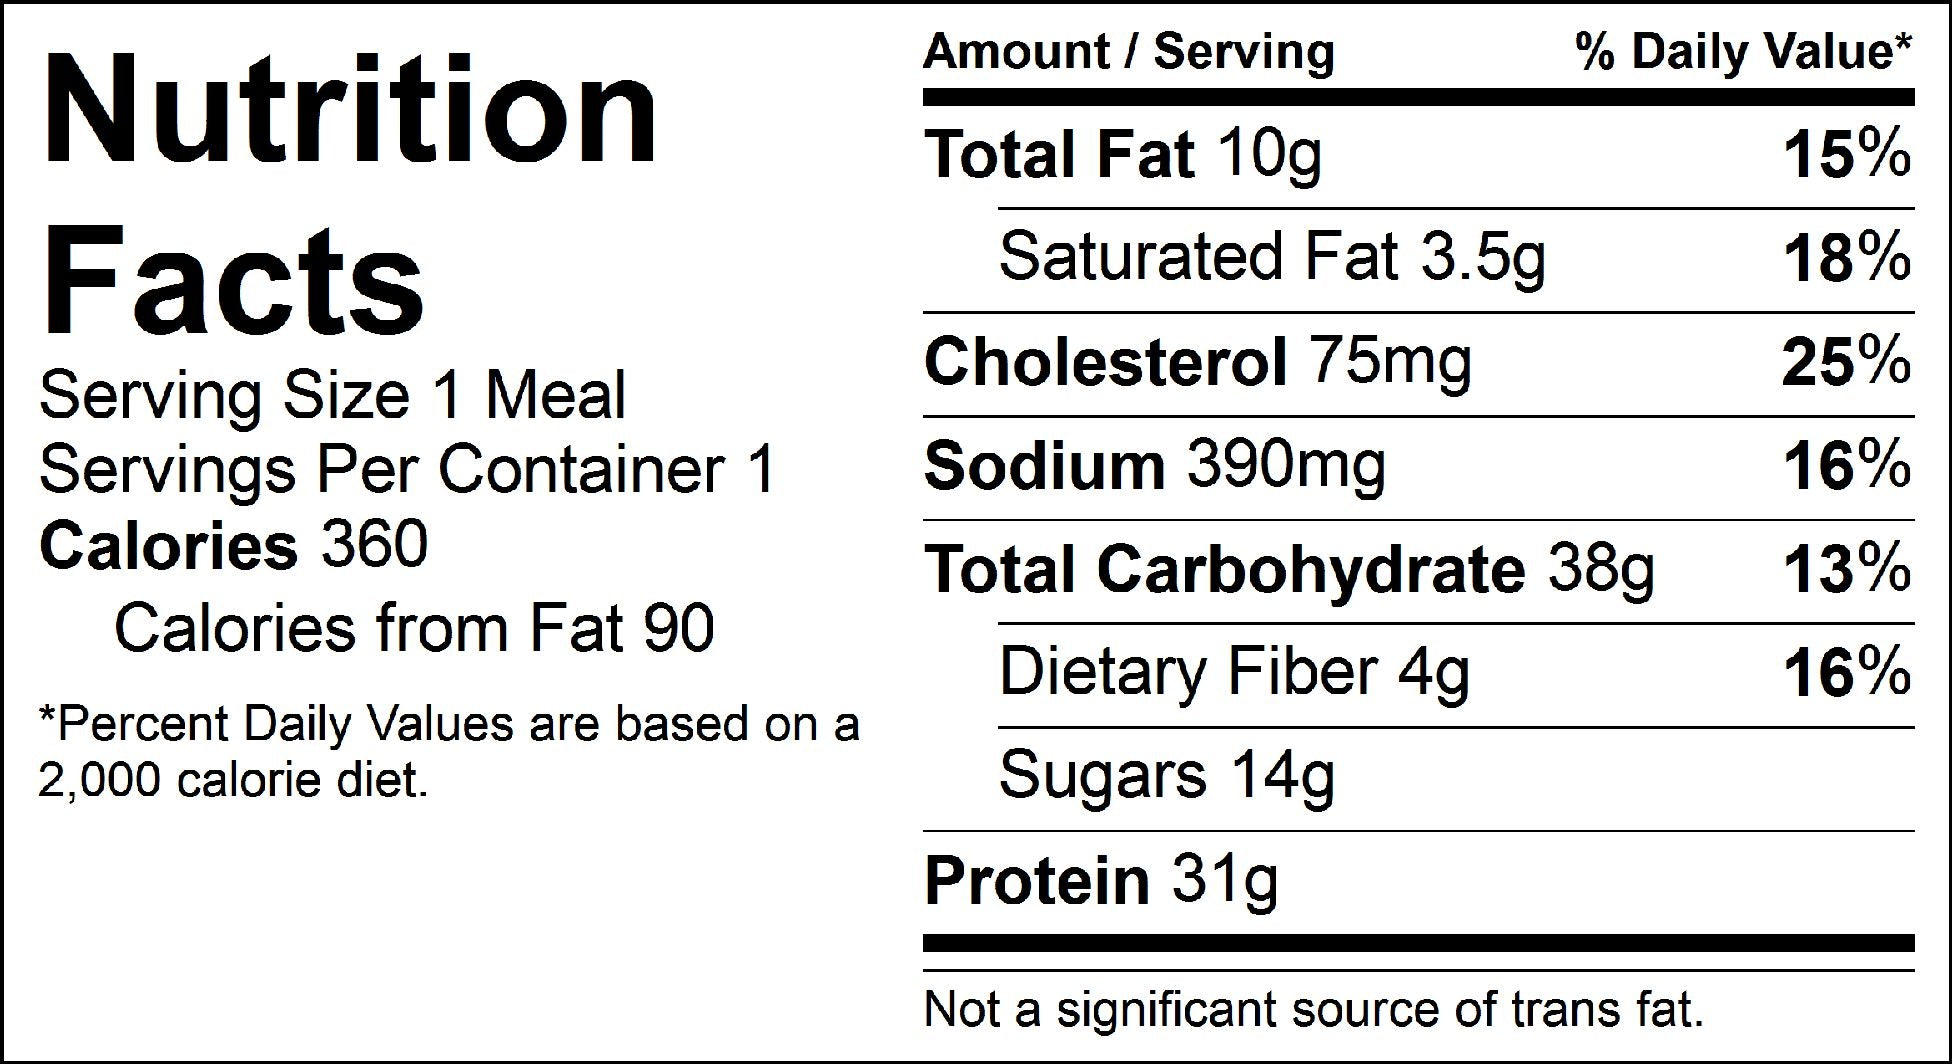 bbq beef nutrition facts